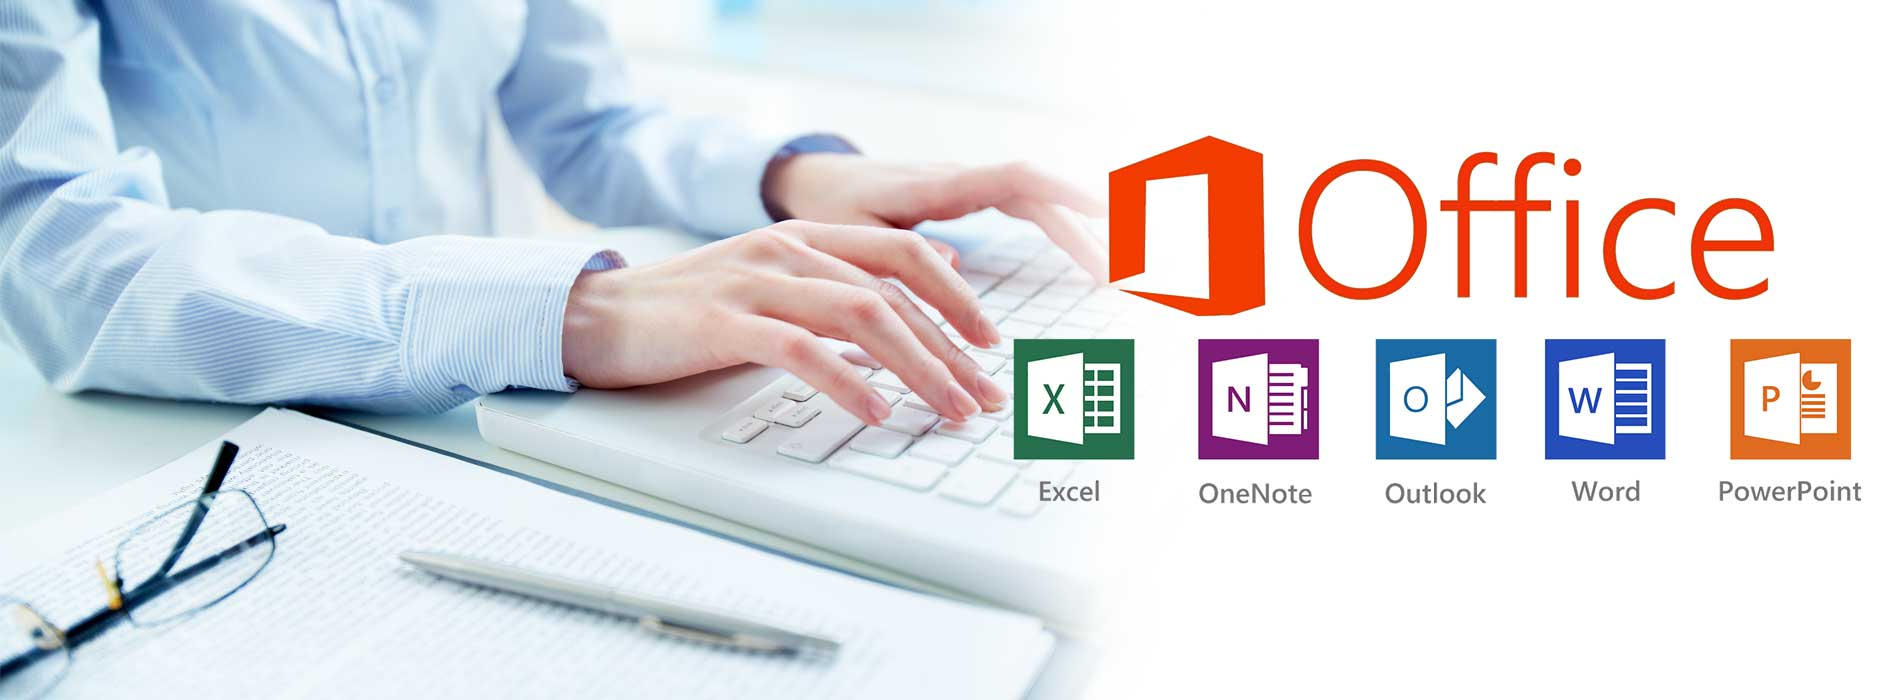 MS OFFICE: THE OPTIMUM REQUIREMENT FOR YOUR FUTURE ENDEAVORS